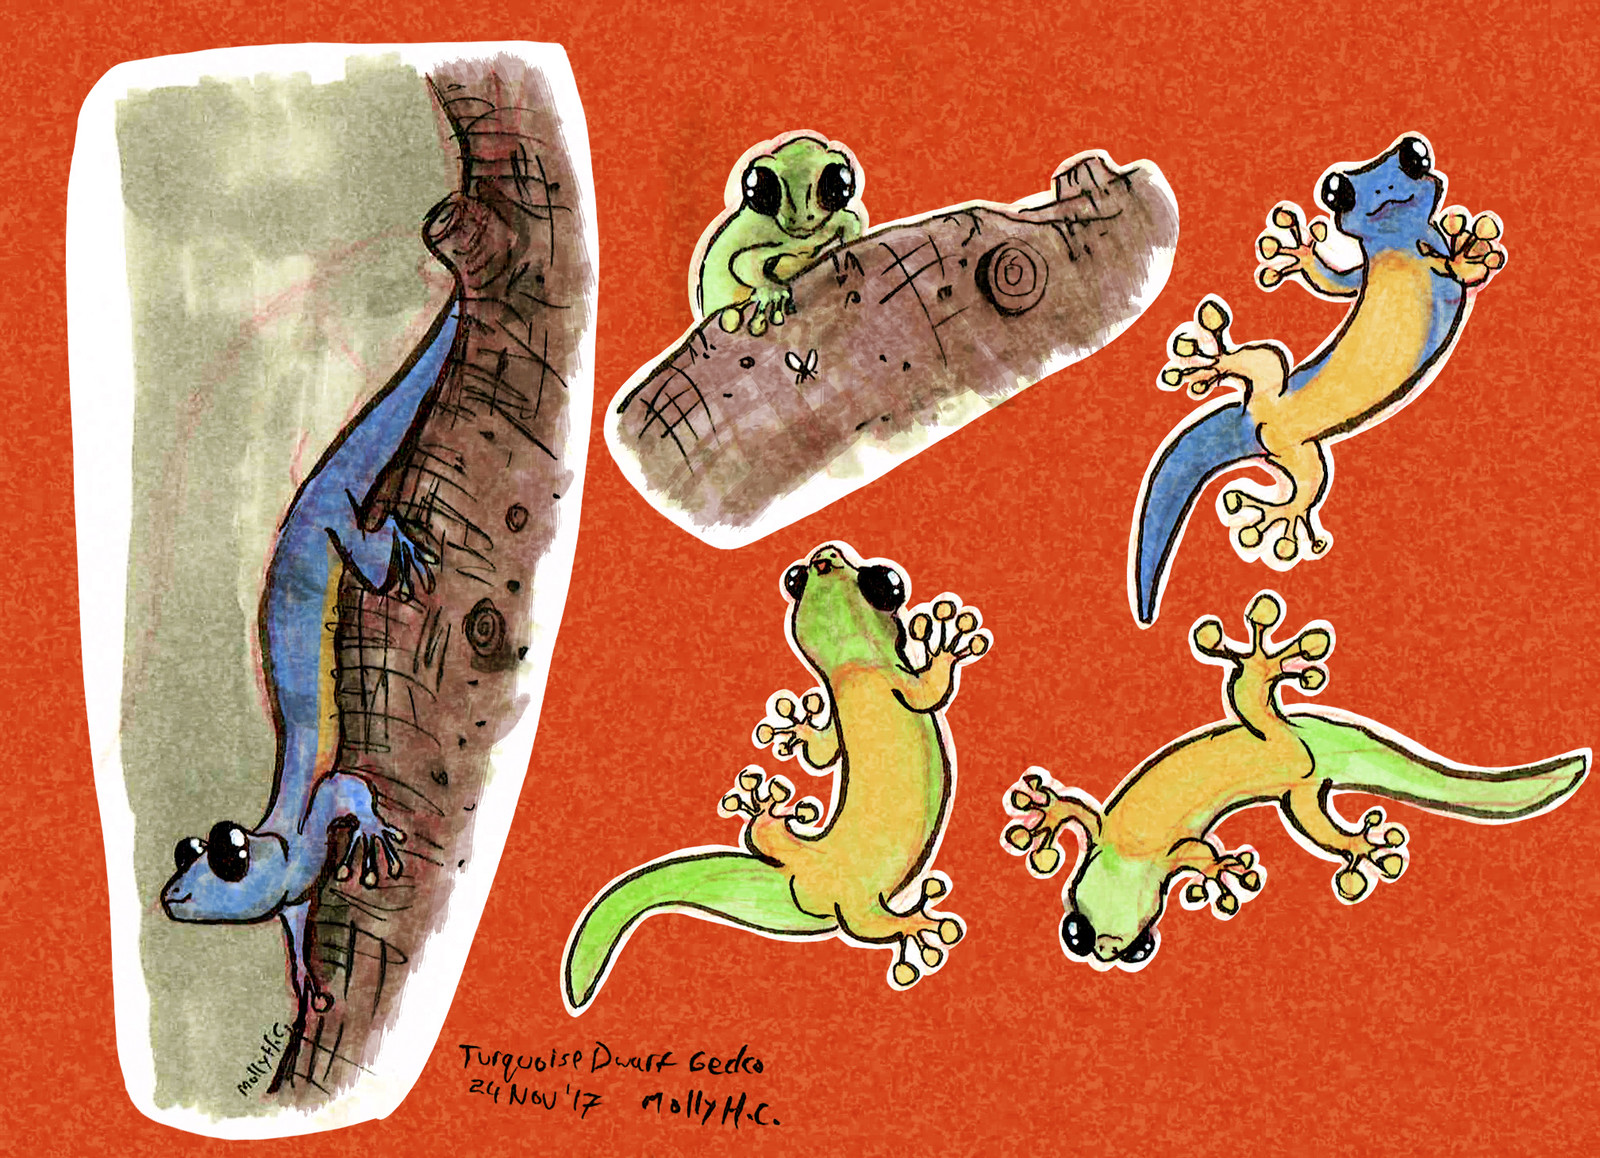 Malaysian Dwarf Gecko Character Concepts